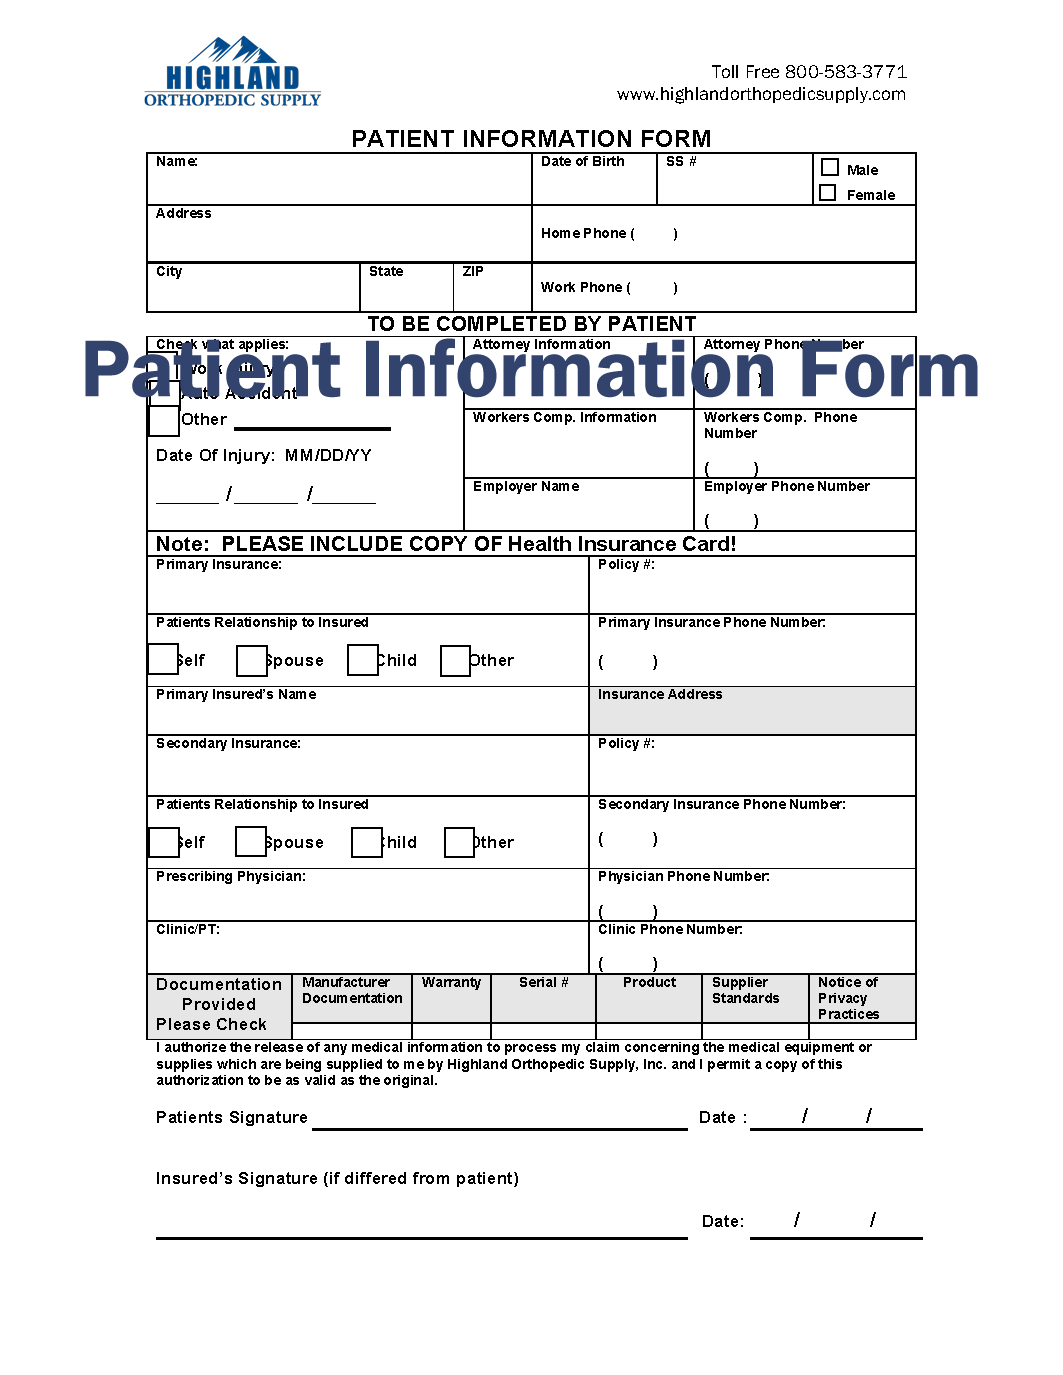 Patient Information Form patient insurance info HOS